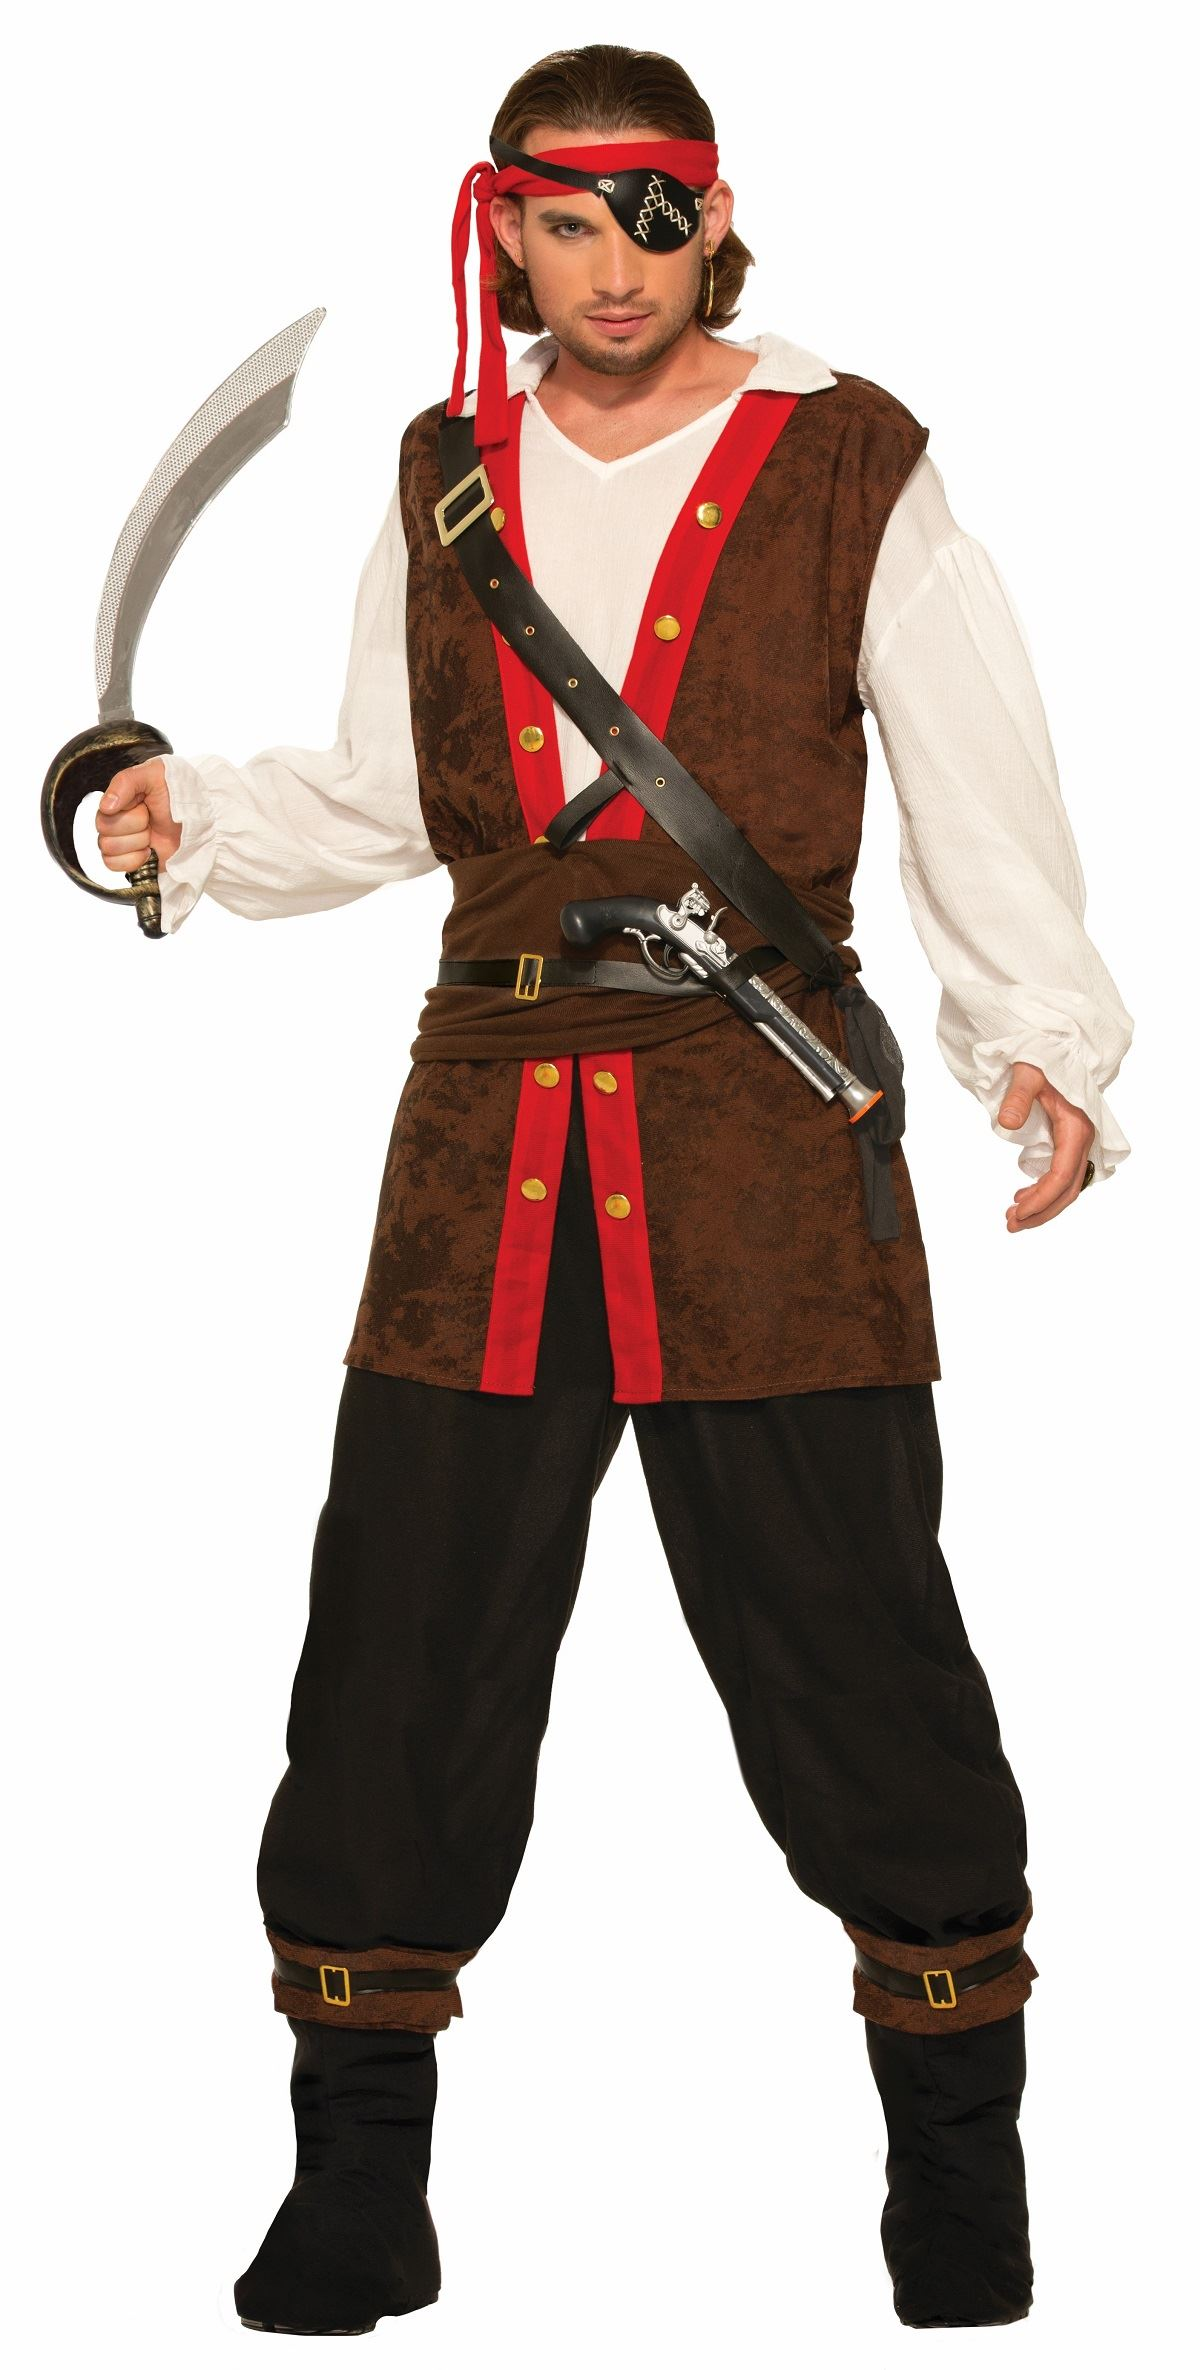 Adult Bucaneer Of The Seas Men Pirate Costume  sc 1 st  The Costume Land & Adult Bucaneer Of The Seas Men Pirate Costume | $53.99 | The Costume ...